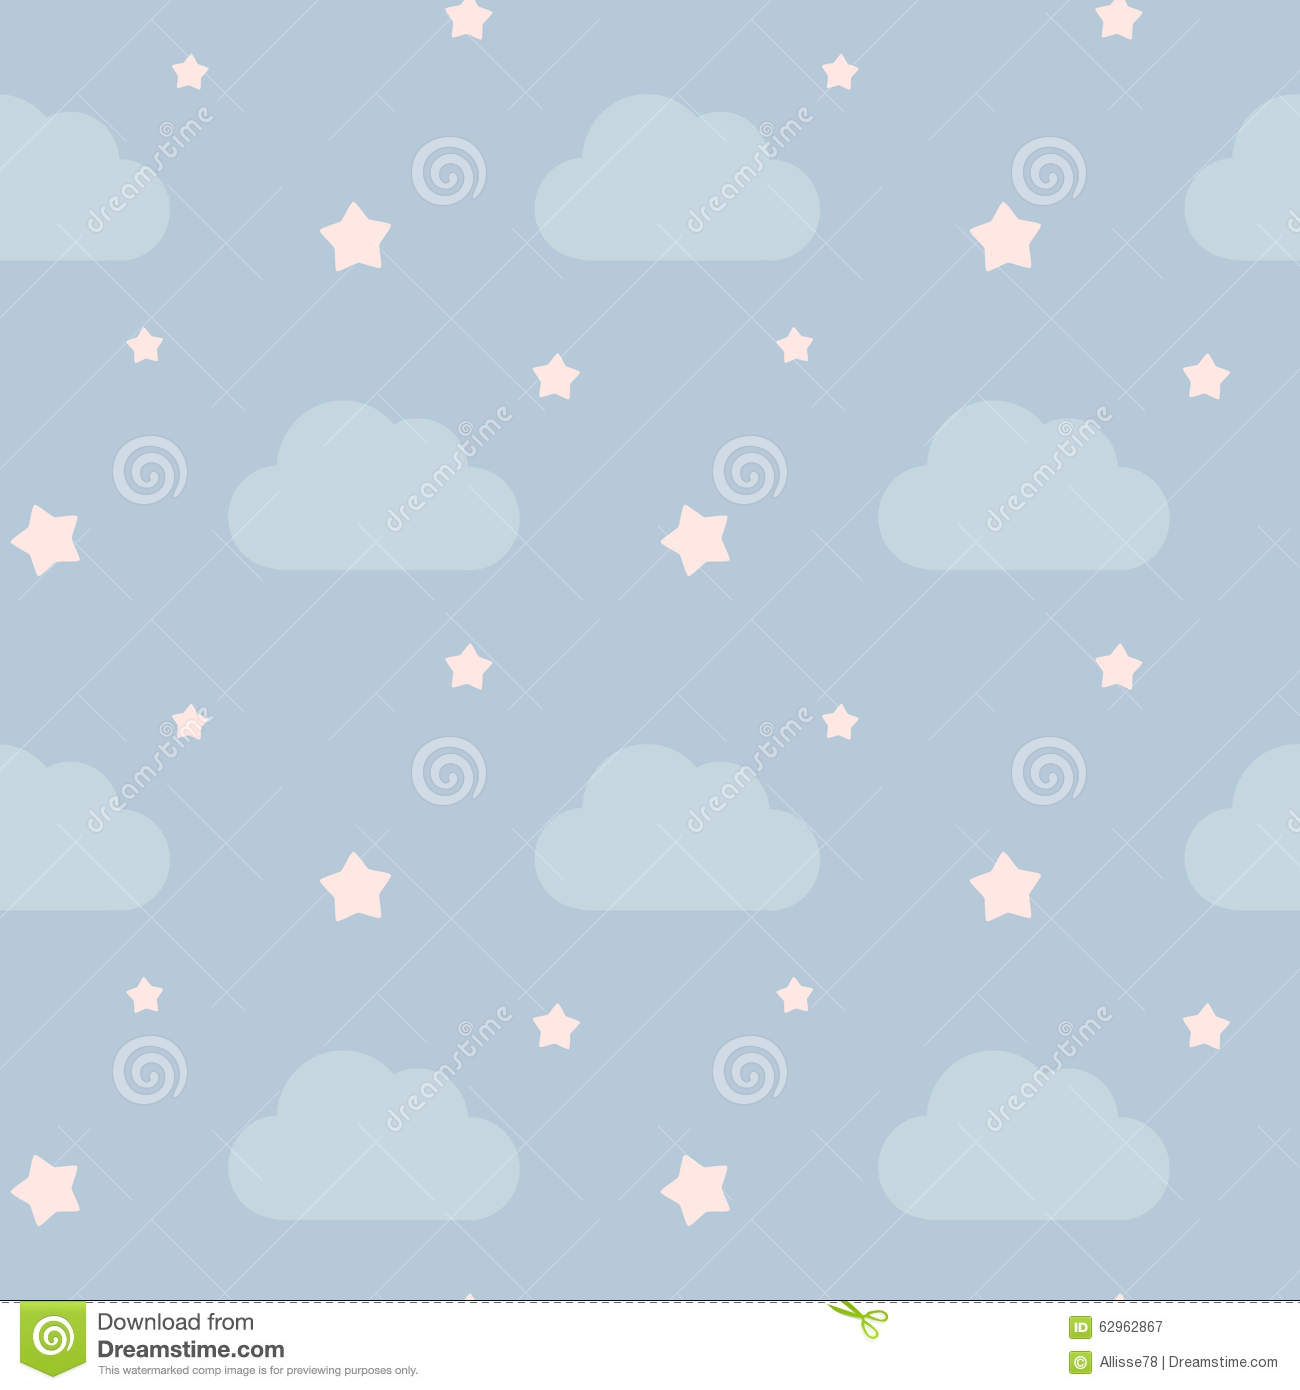 Lovely Cute Sky With Clouds And Pink Little Stars Seamless